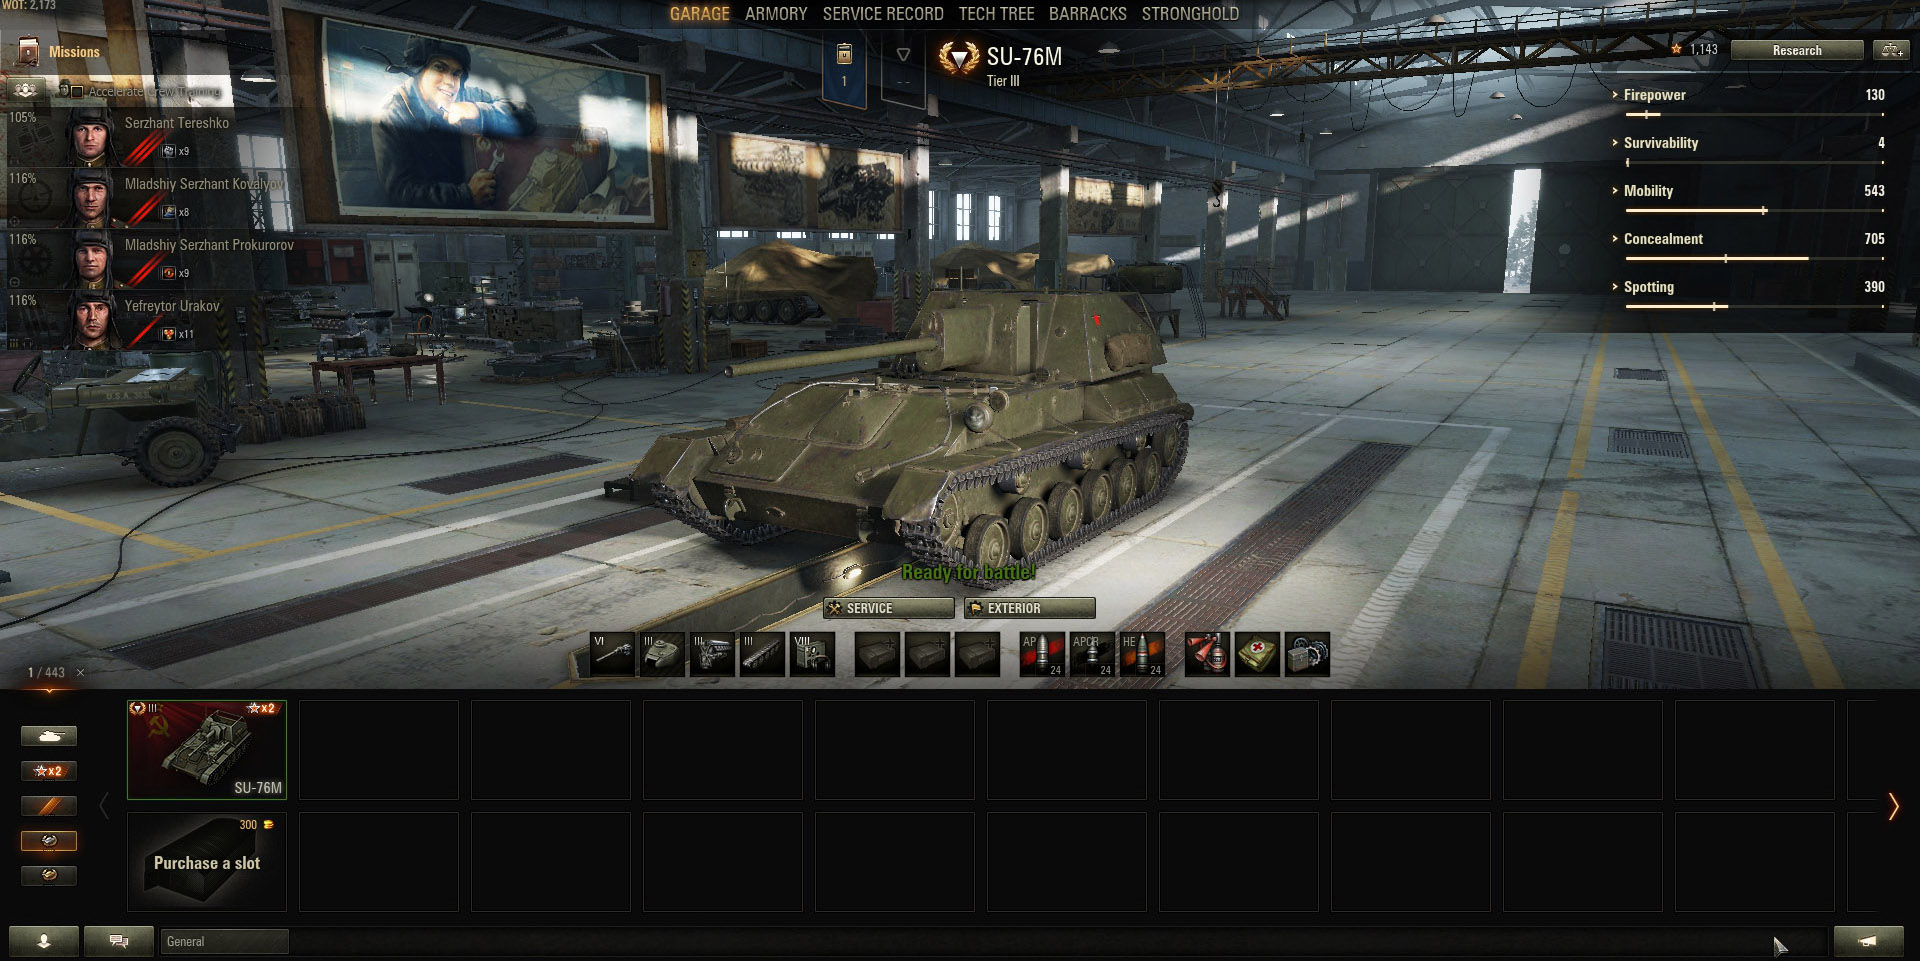 Included in World of Tanks is the SU-76, M Variant.